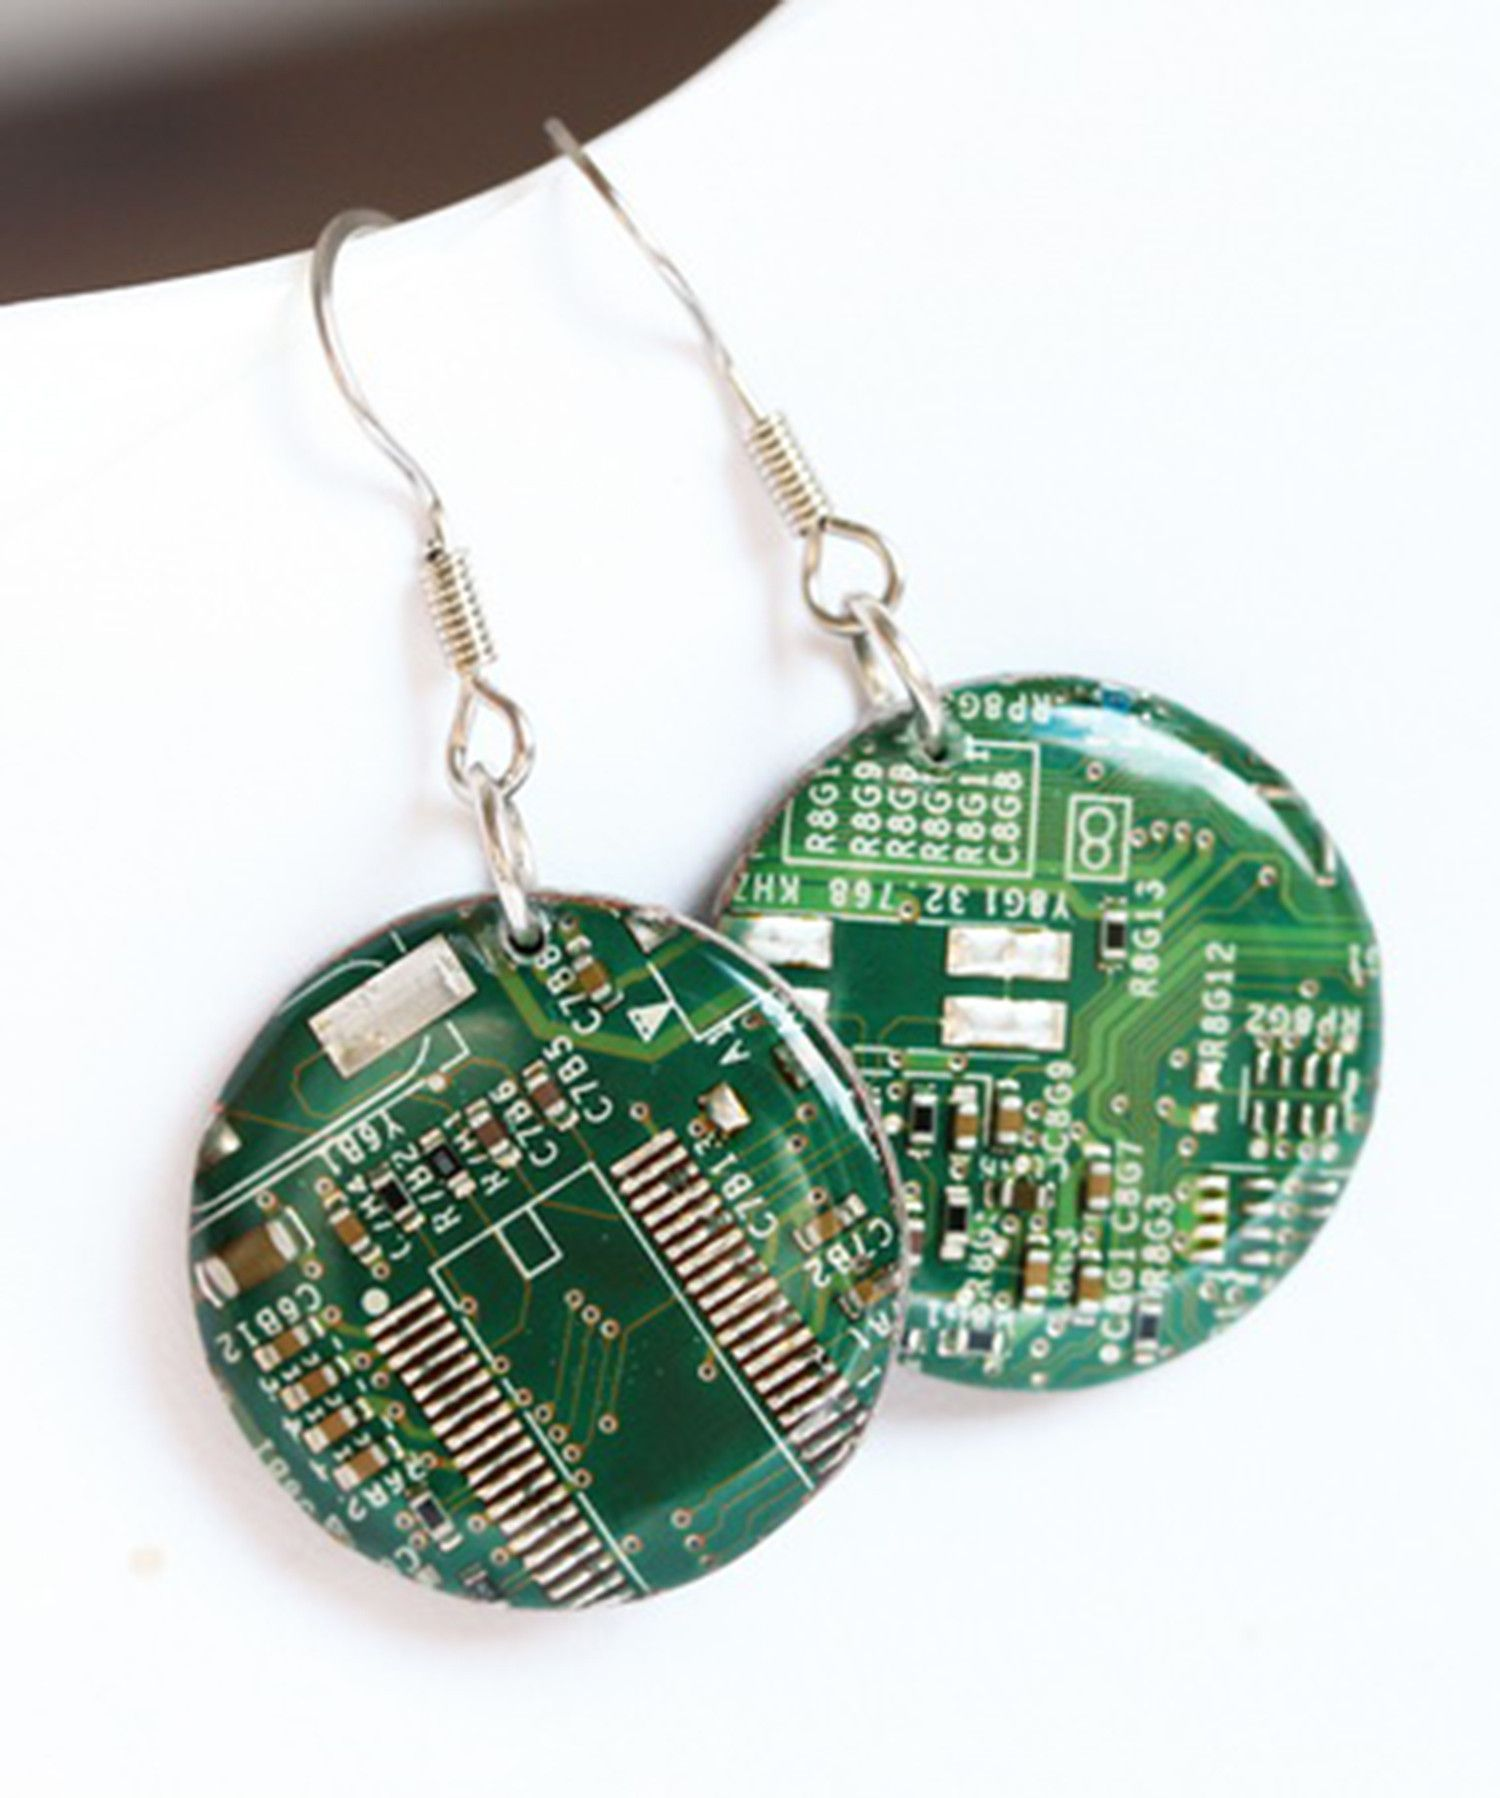 Circuit board earrings are an unusual accessory for a unique one. They emphasize your different taste and geeky style! You will definitely impress everyone around you wearing such earrings. If you wan